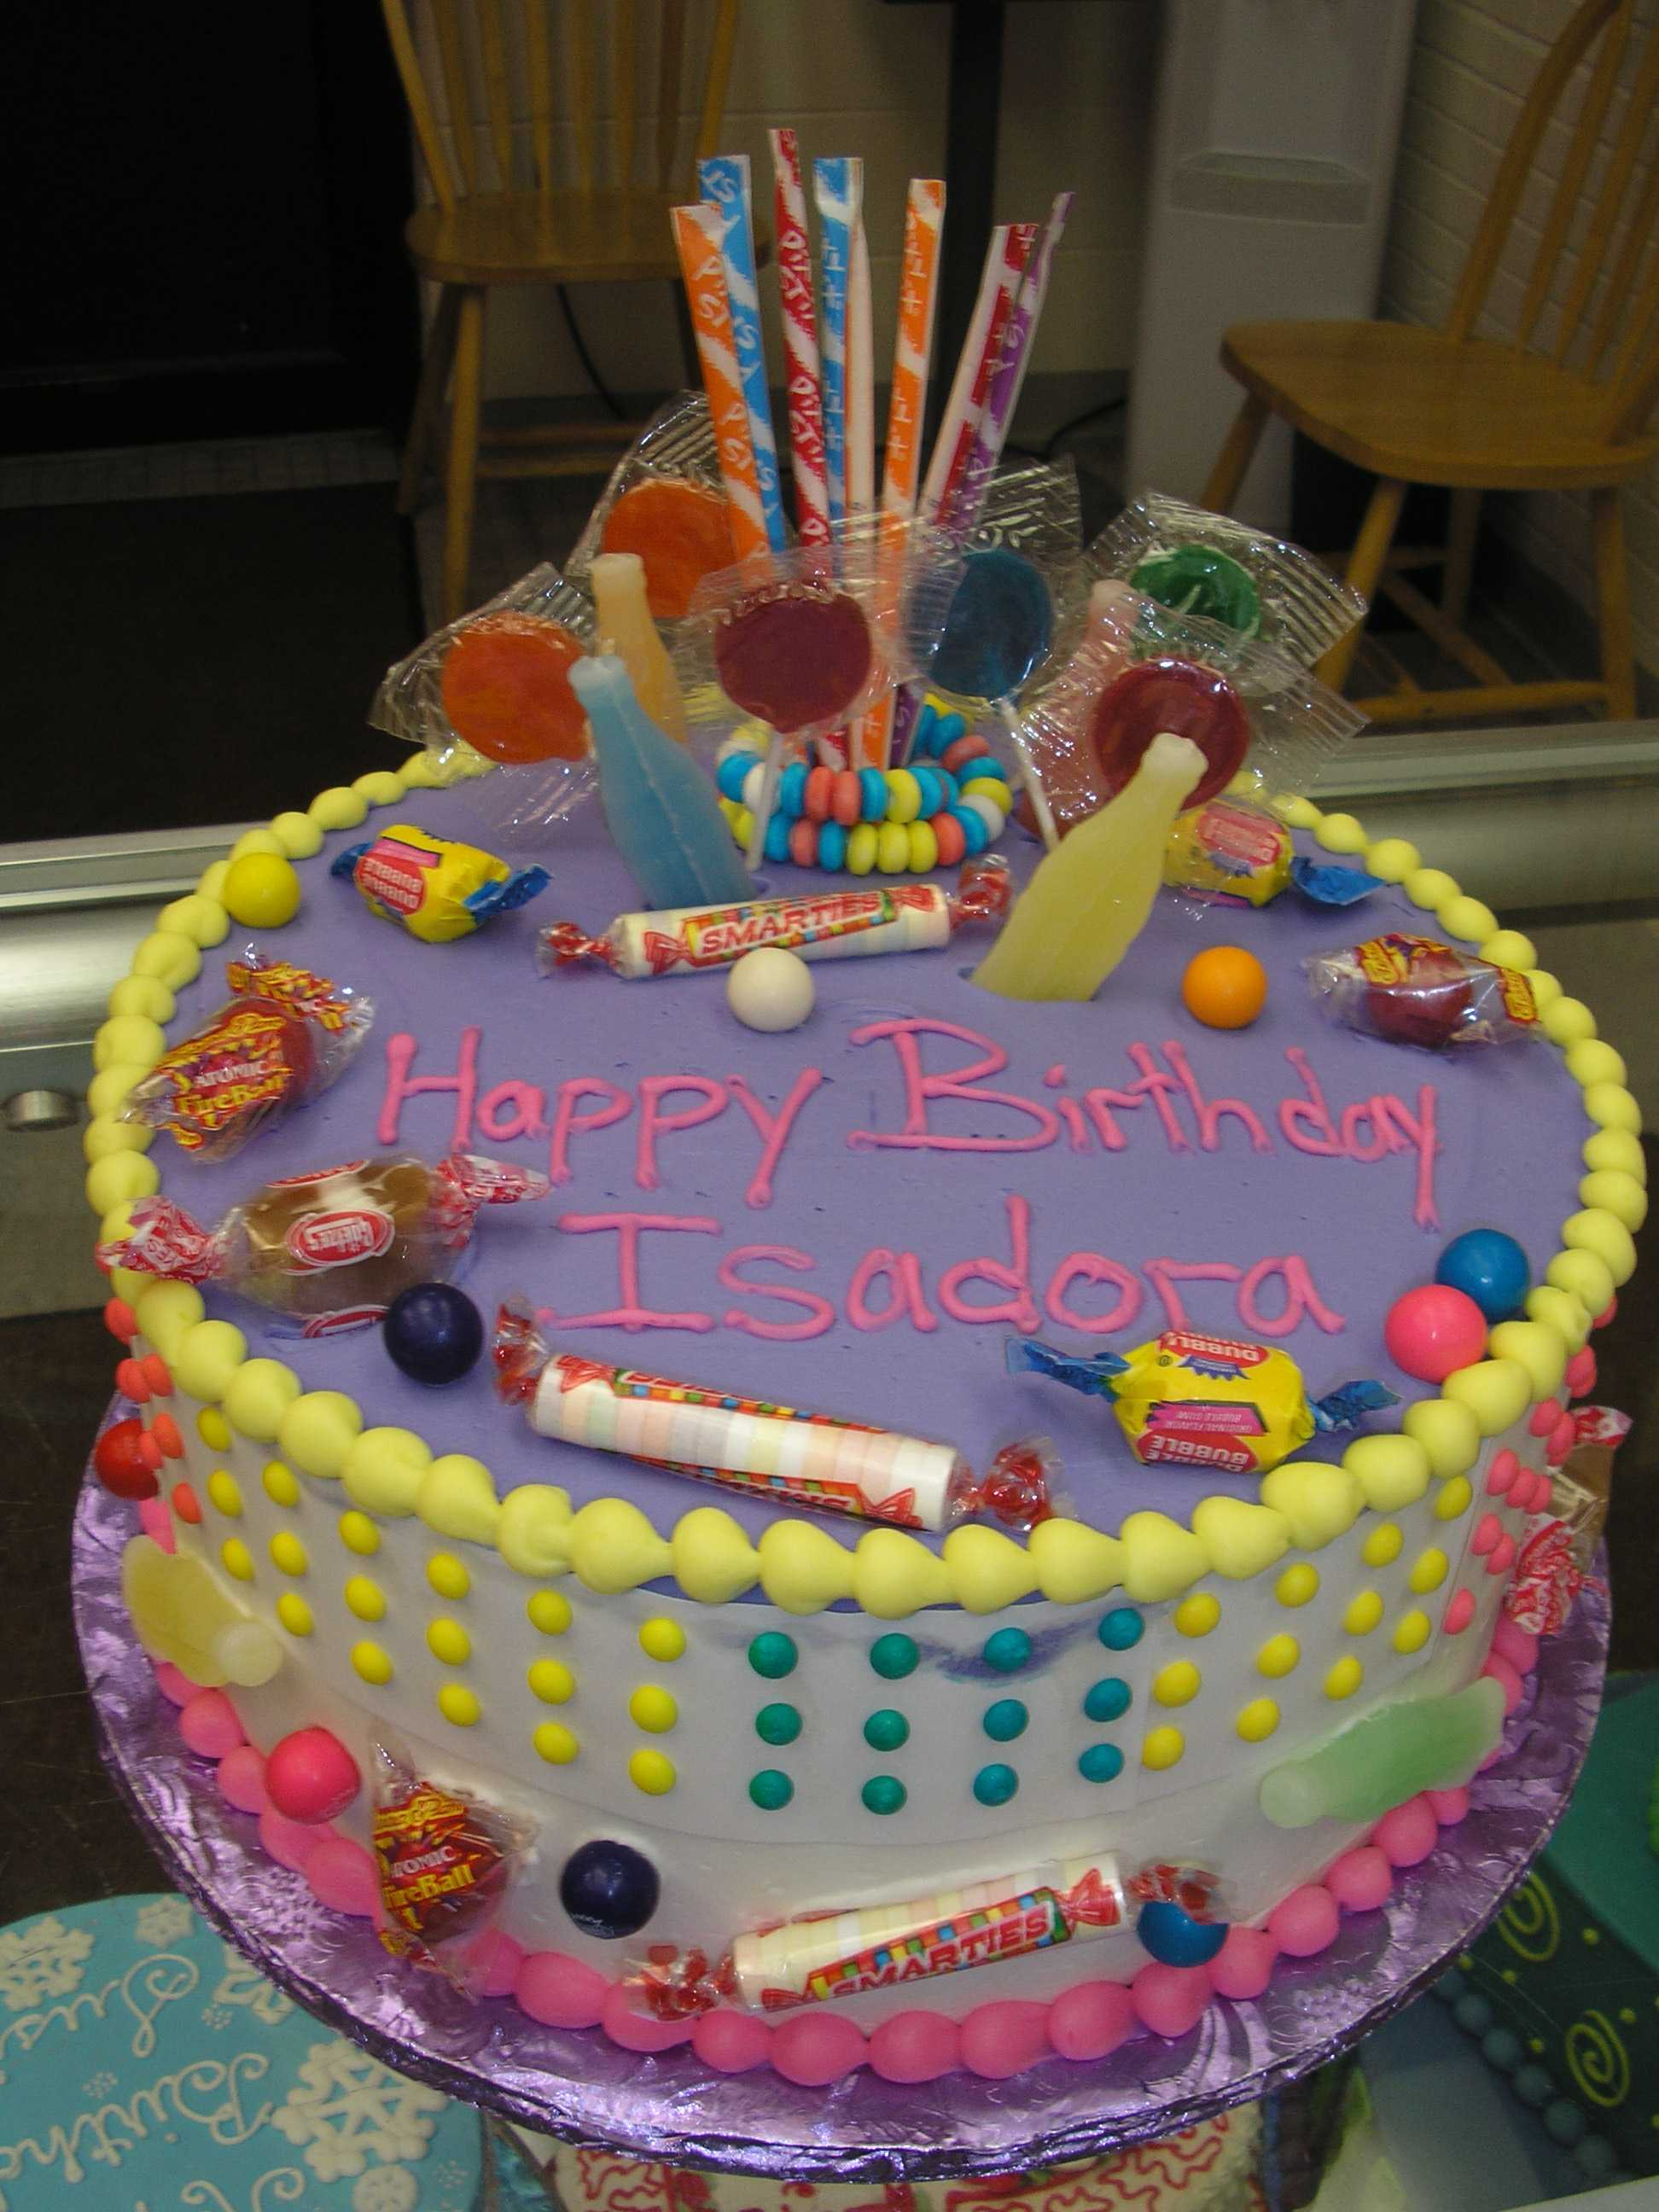 penny candy design cake, smartees. gumballs, lollipops